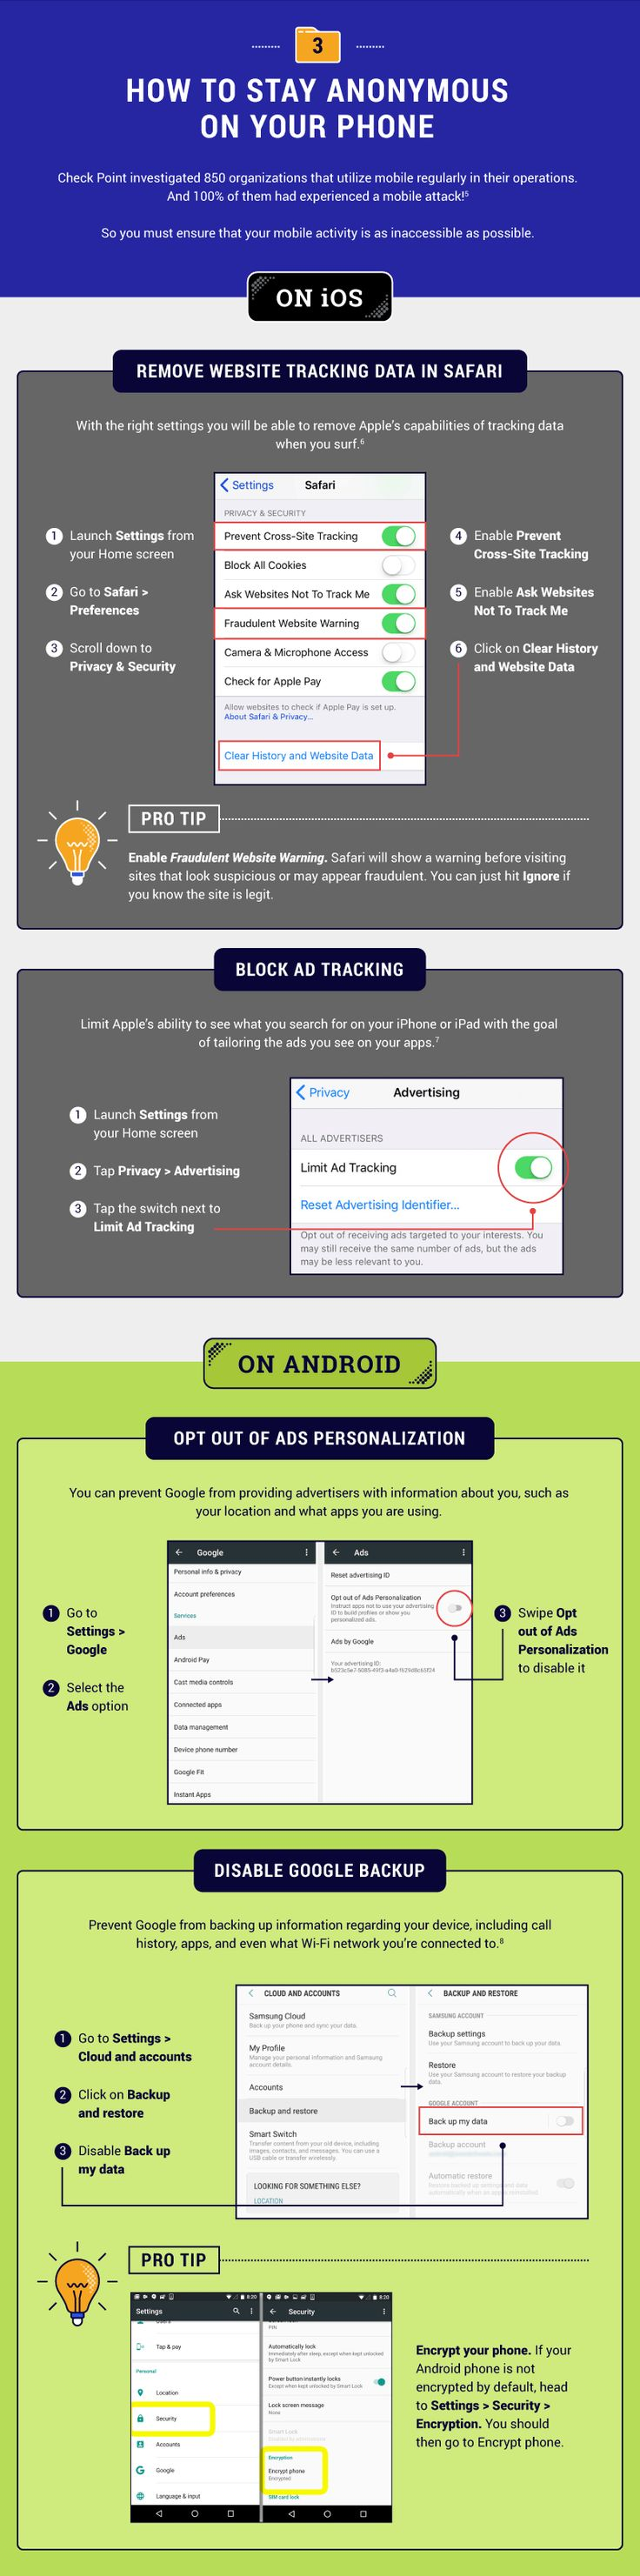 Marketing-Infographic-Protect-your-privacy-on-mobile-Click-for-more-infographics-with-privacy-tips.-H Marketing Infographic : Protect your privacy on mobile! Click for more infographics with privacy tips. H...